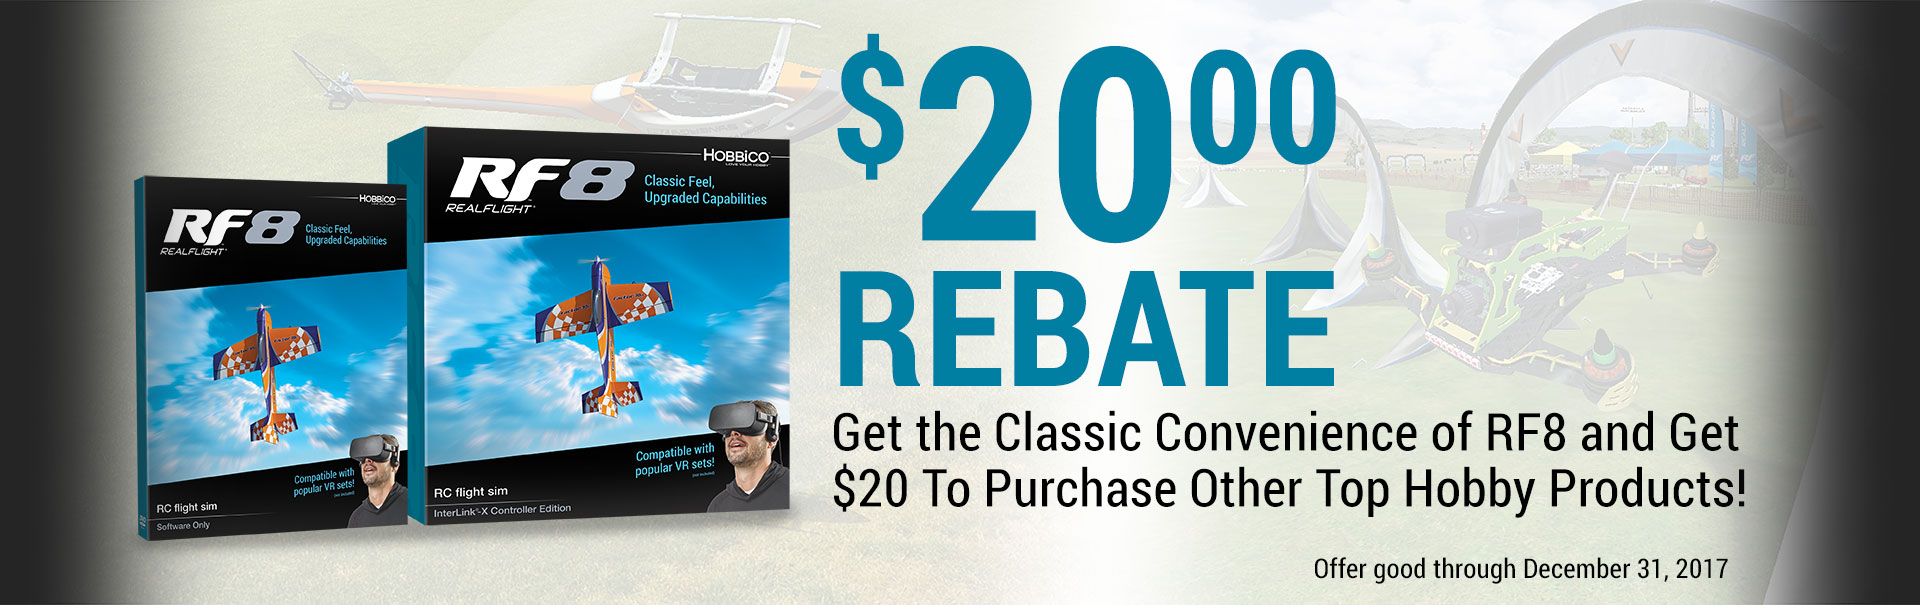 $20 Rebate.  Get the Classic Convenience of RF8 and Get $20 to Purchase Other Top Hobby Products! Offer good through December 31, 2017.  Download the rebate form.